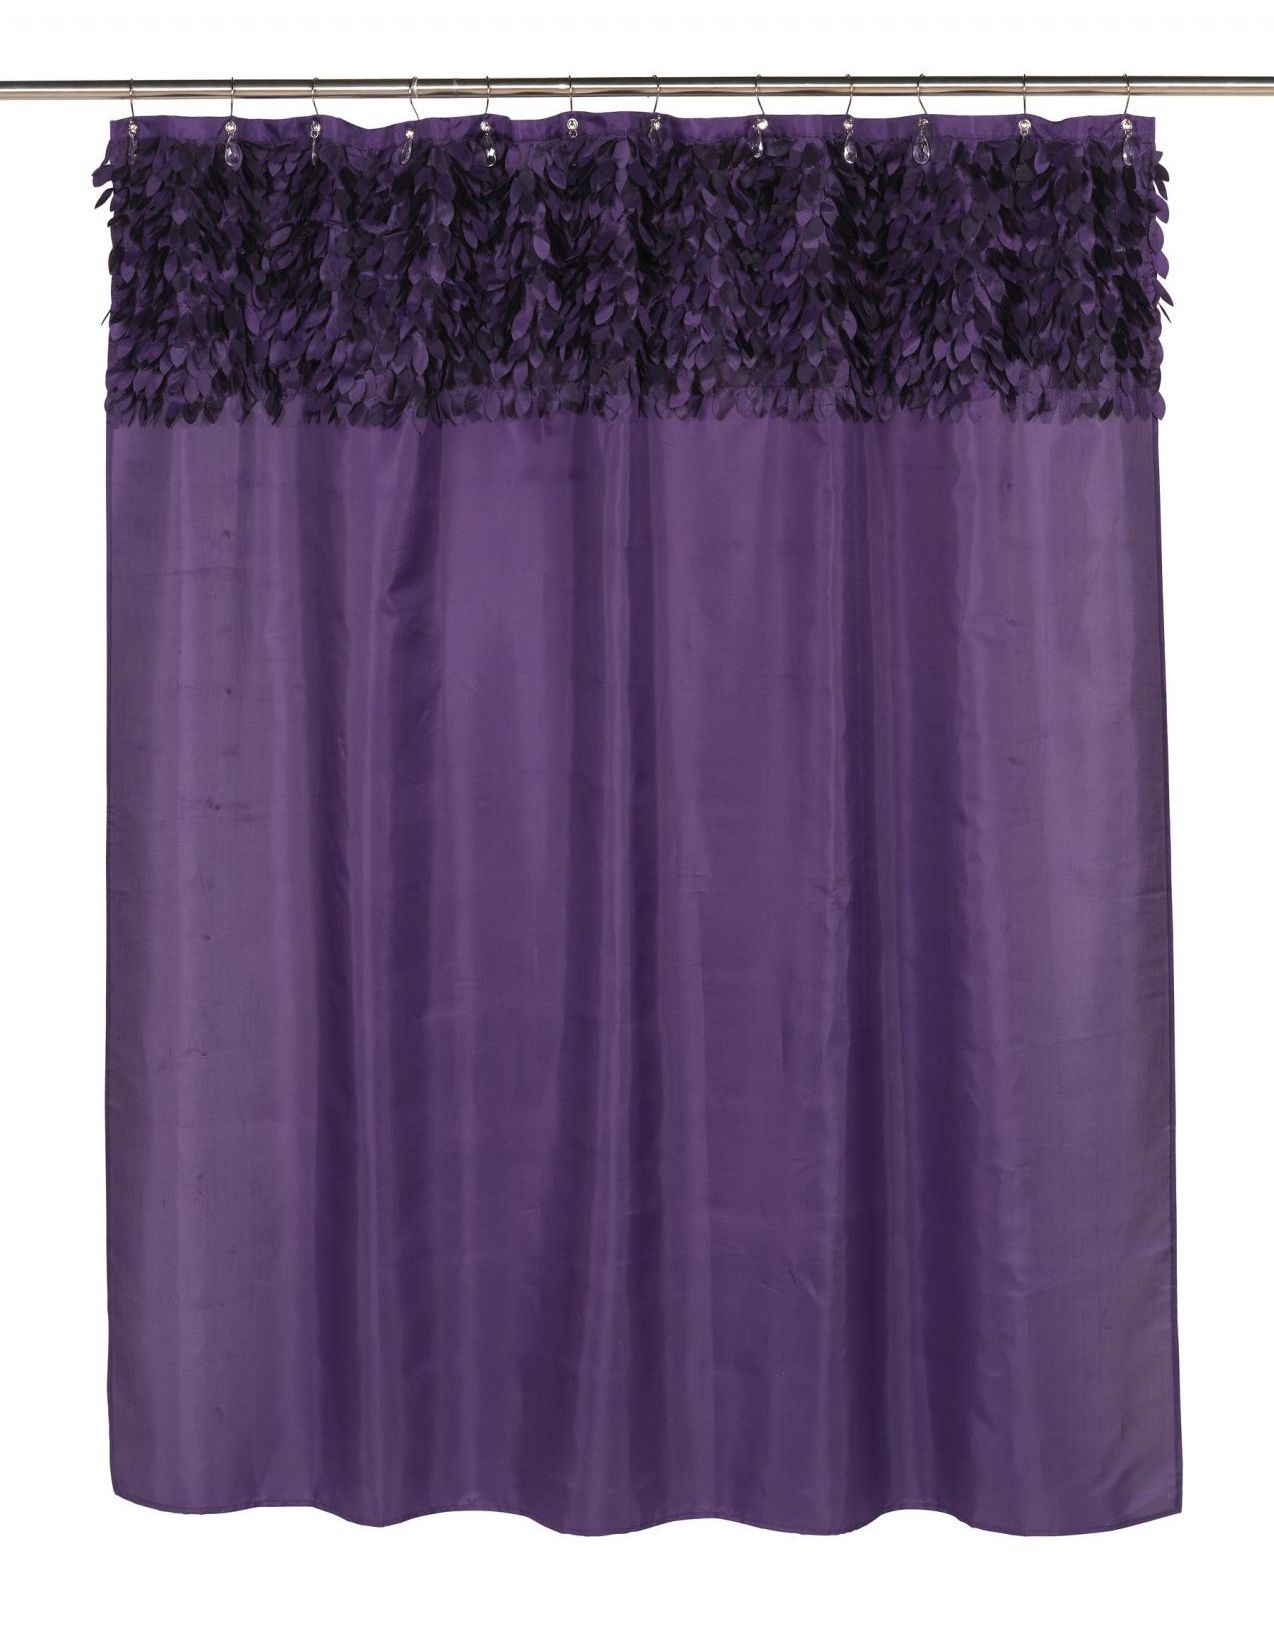 Шторки Элитная шторка для ванной Jasmine Purple от Carnation Home Fashions elitnaya-shtorka-dlya-vannoy-jasmine-purple-ot-carnation-home-fashions-ssha-kitay.jpg